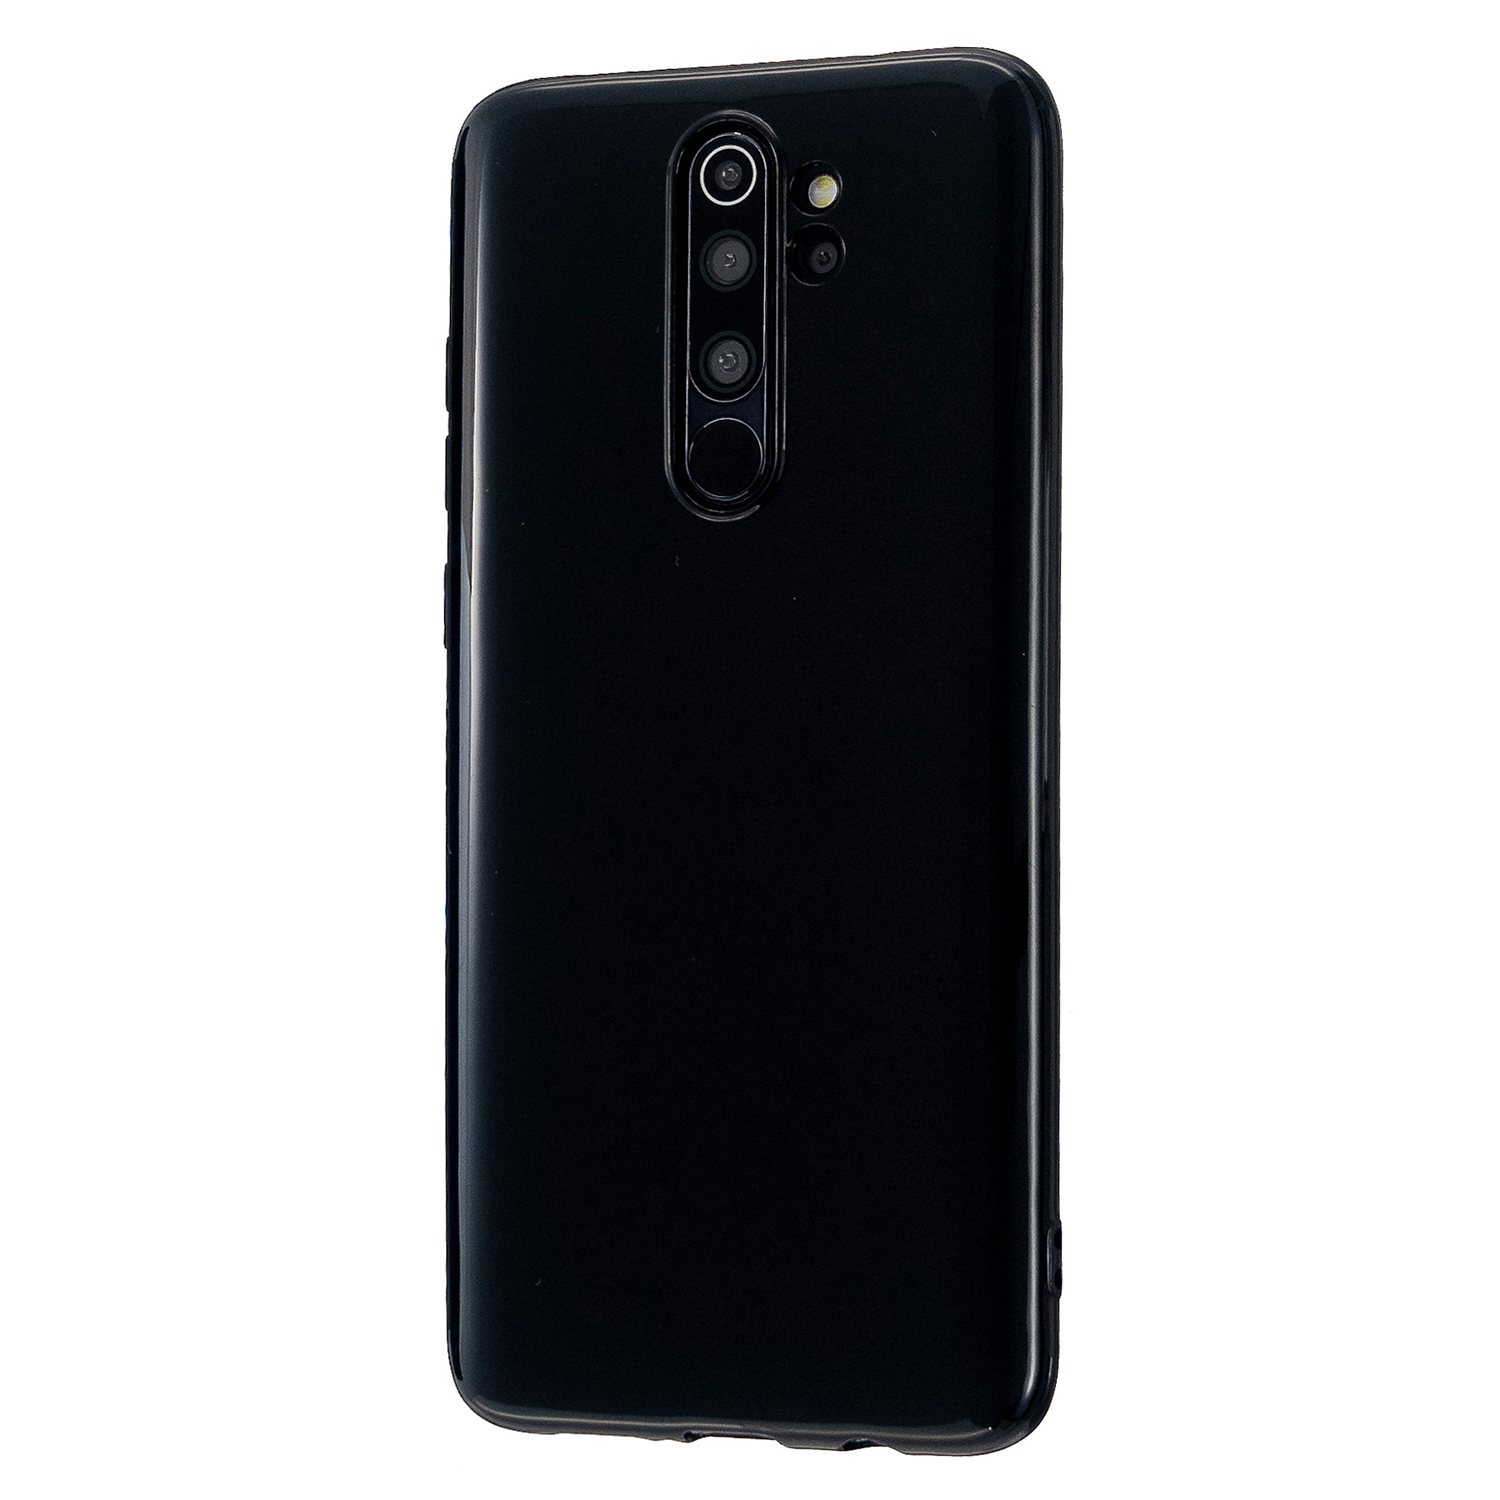 For Redmi Note 8/8 Pro Cellphone Cover Reinforced Soft TPU Phone Case Anti-scratch Full Body Protection Bright black